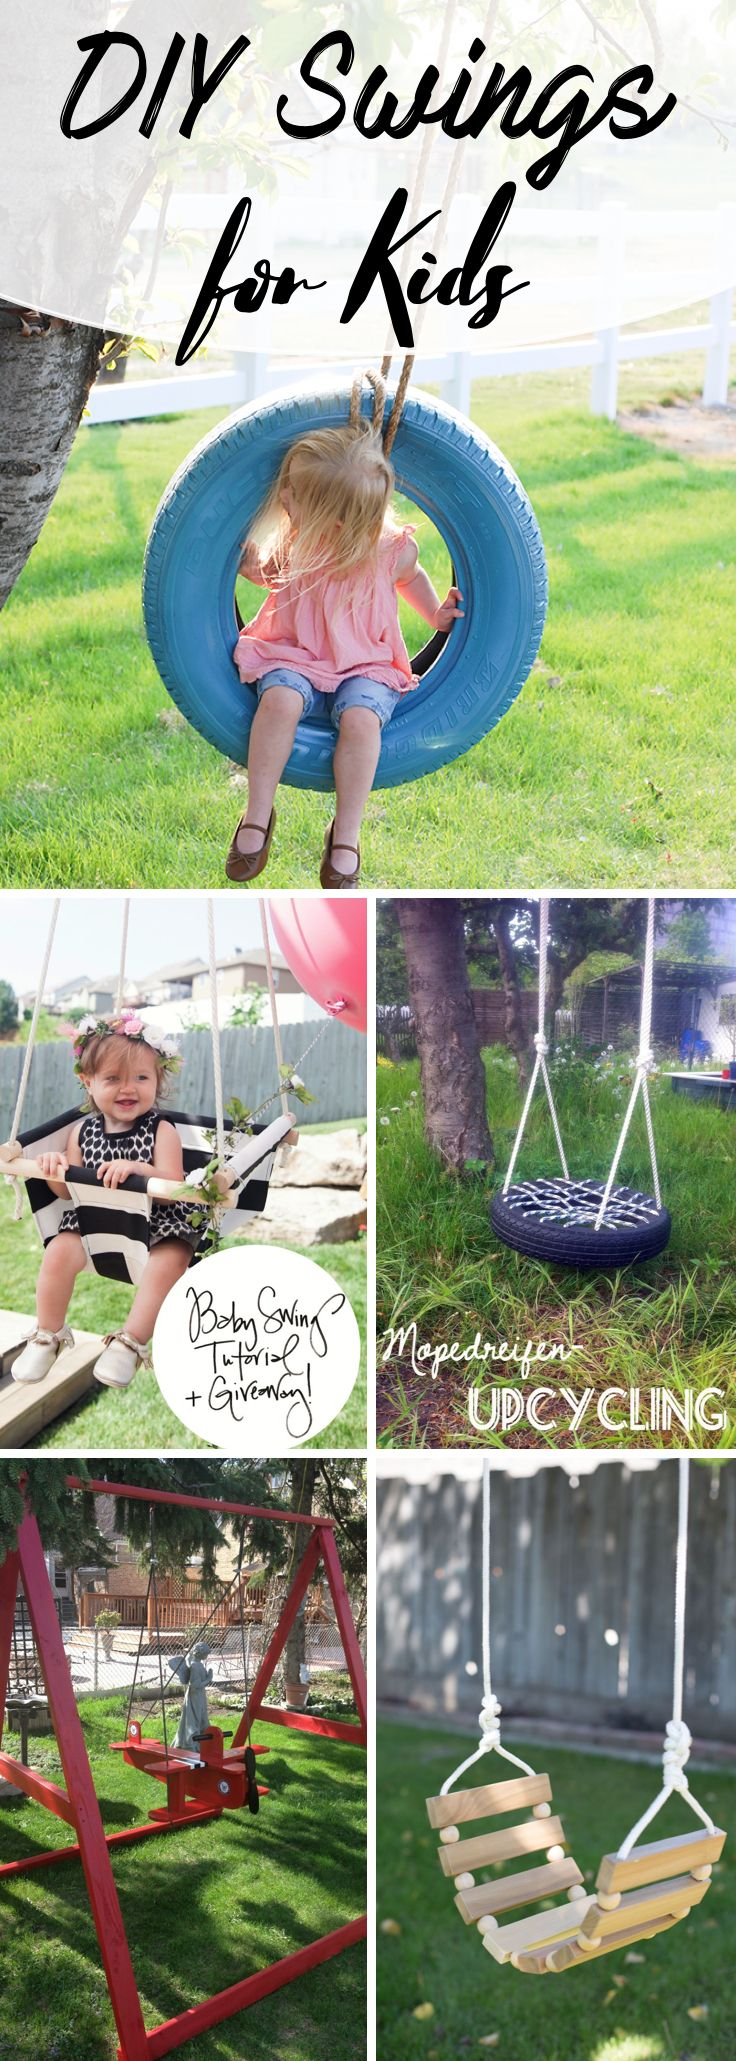 15 incredible diy swings for kids bringing a lot more joy to your